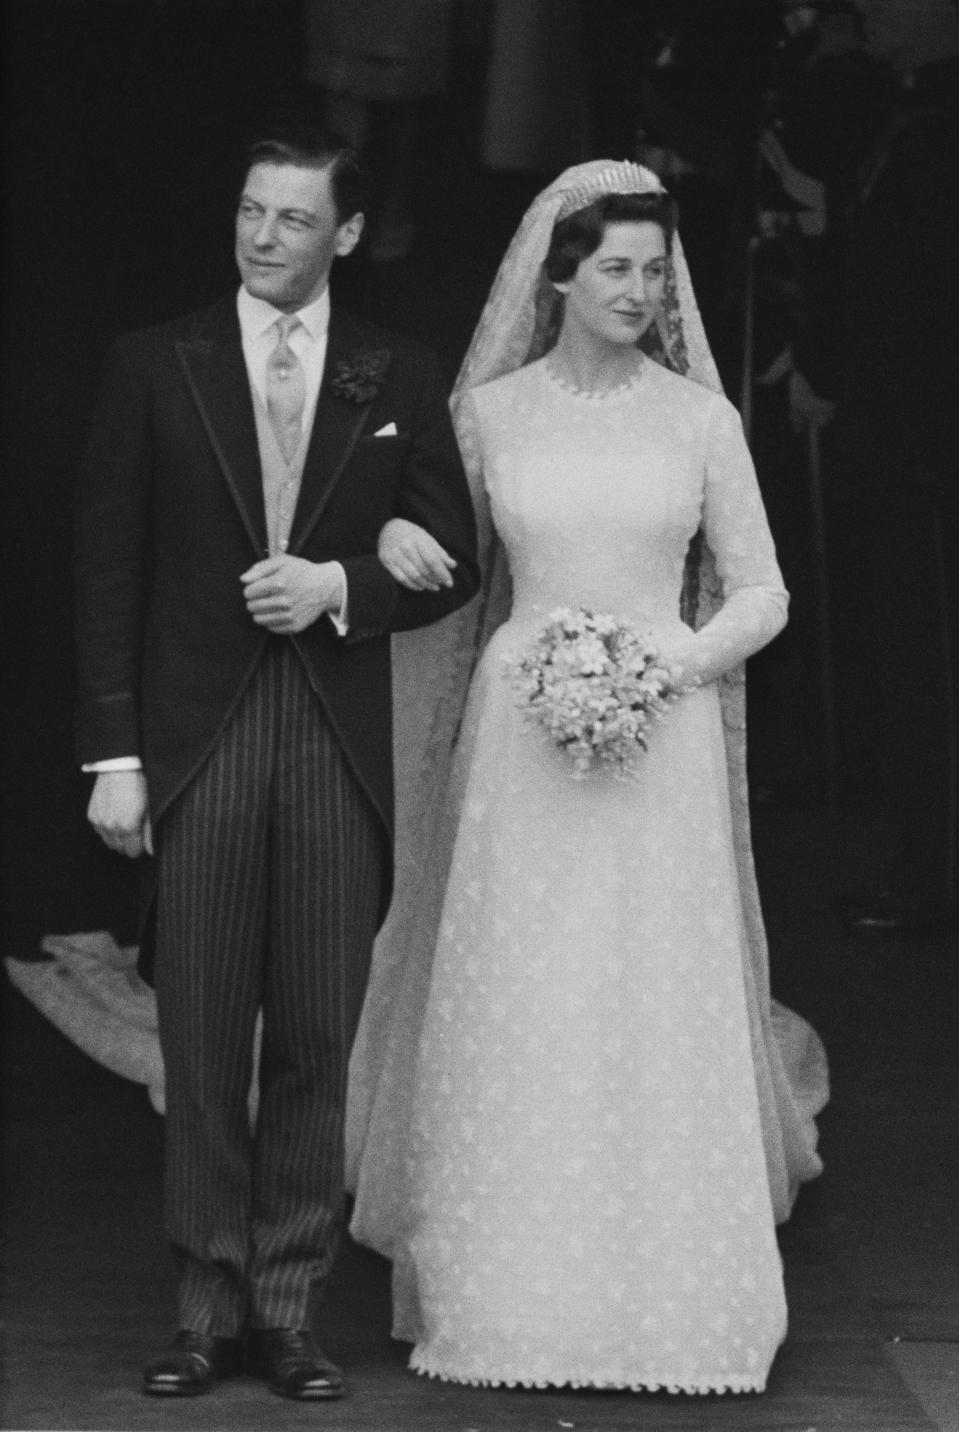 Princess Alexandra, The Honourable Lady Ogilvy pictured with her husband Angus Ogilvy (1928-2004) as they leave Westminster Abbey on the day of their wedding in London on 24th April 1963. (Photo by Harry Benson/Daily Express/Hulton Archive/Getty Images)